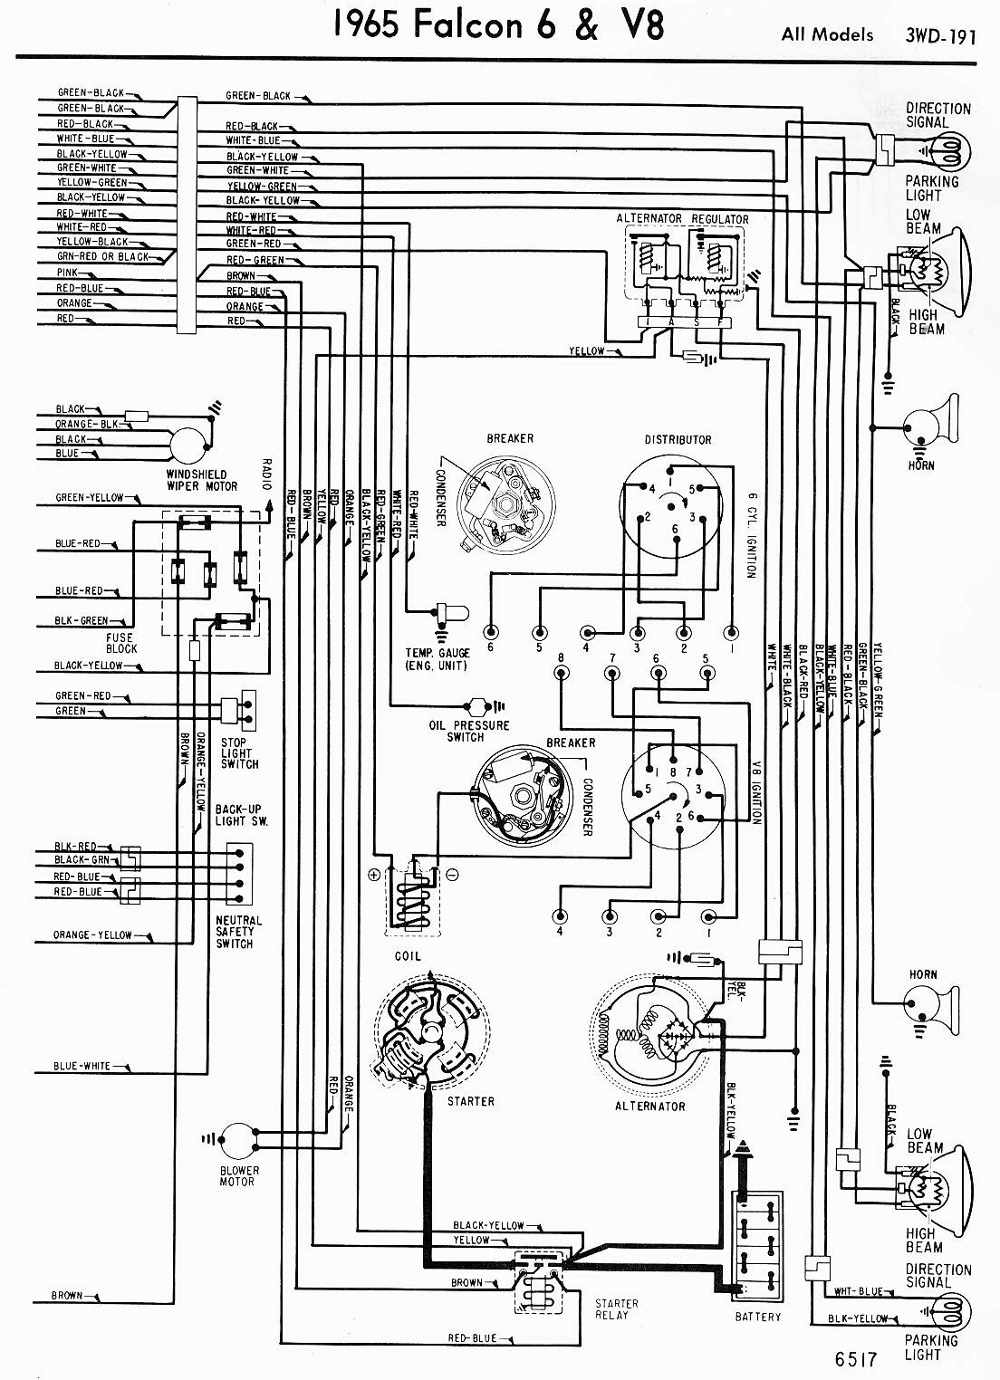 1962 ford falcon wiring diagram yd 0069  complete wiring diagram for a 1963 falcon download diagram  wiring diagram for a 1963 falcon